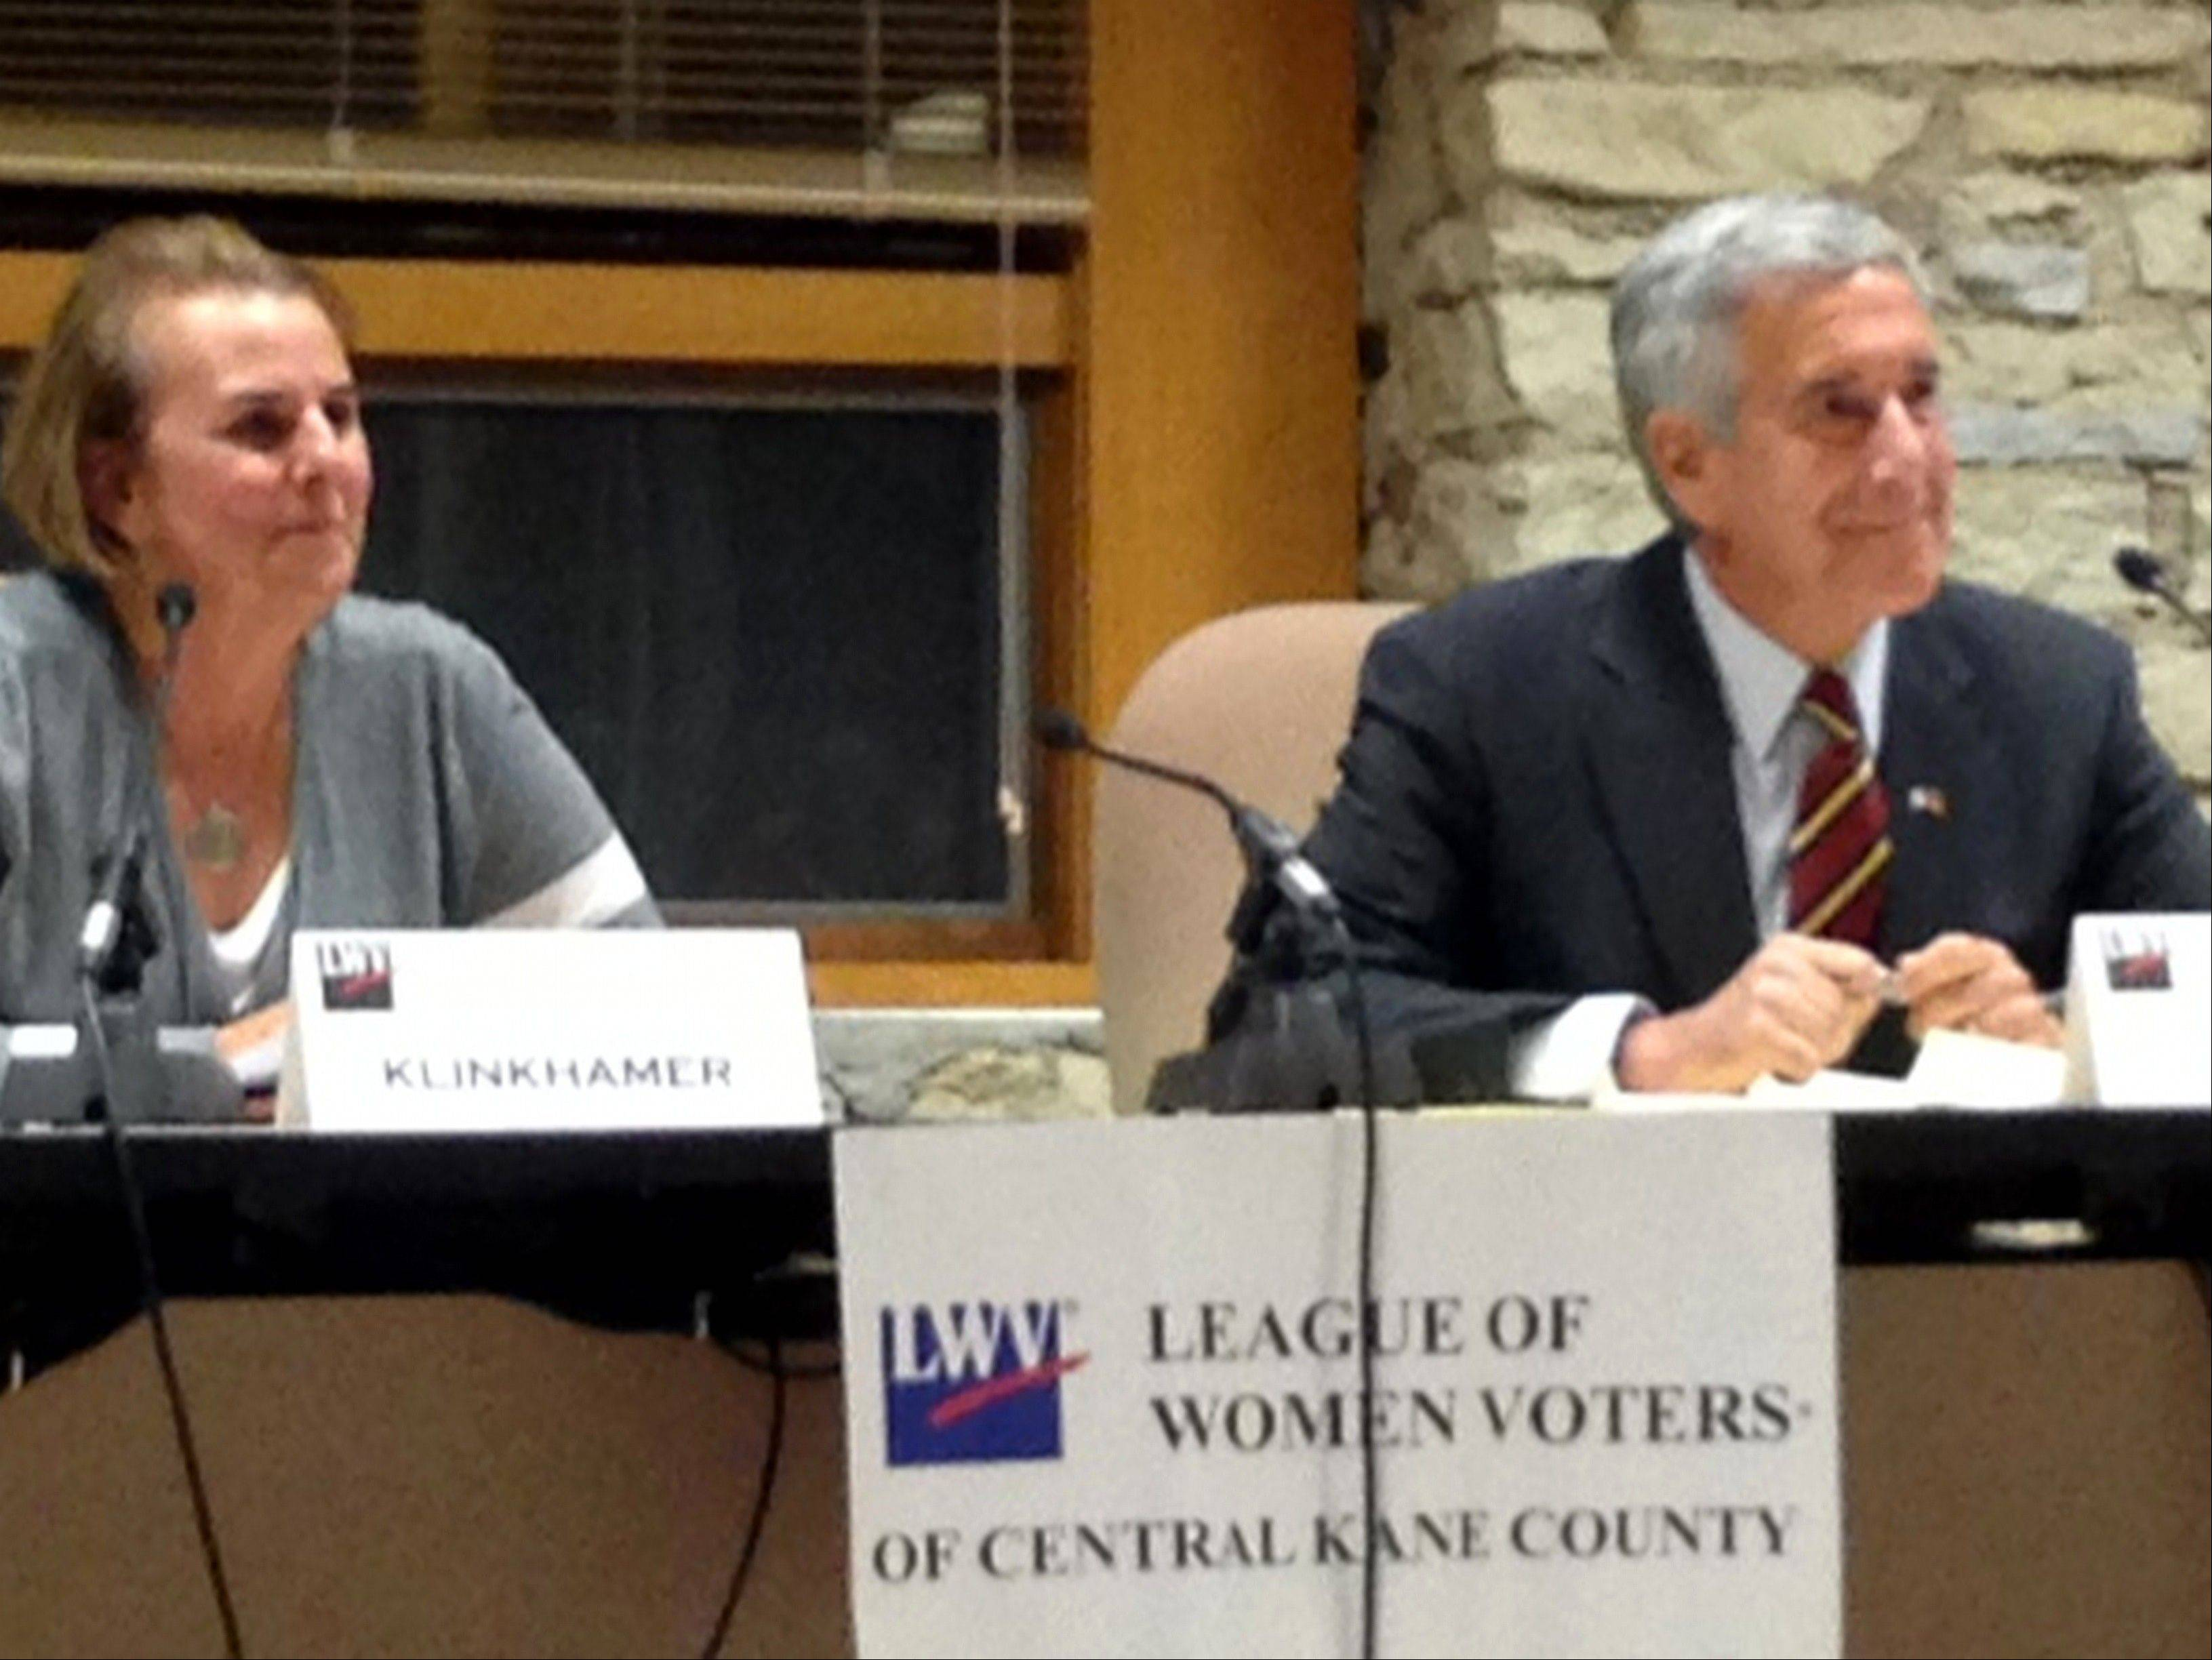 Democrat Sue Klinkhamer, left, and Republican Chris Lauzen faced a series of questions from the audience during a League of Women Voters candidates forum for countywide offices in Batavia Thursday night. Klinkhamer and Lauzen are candidates for county board chairman.